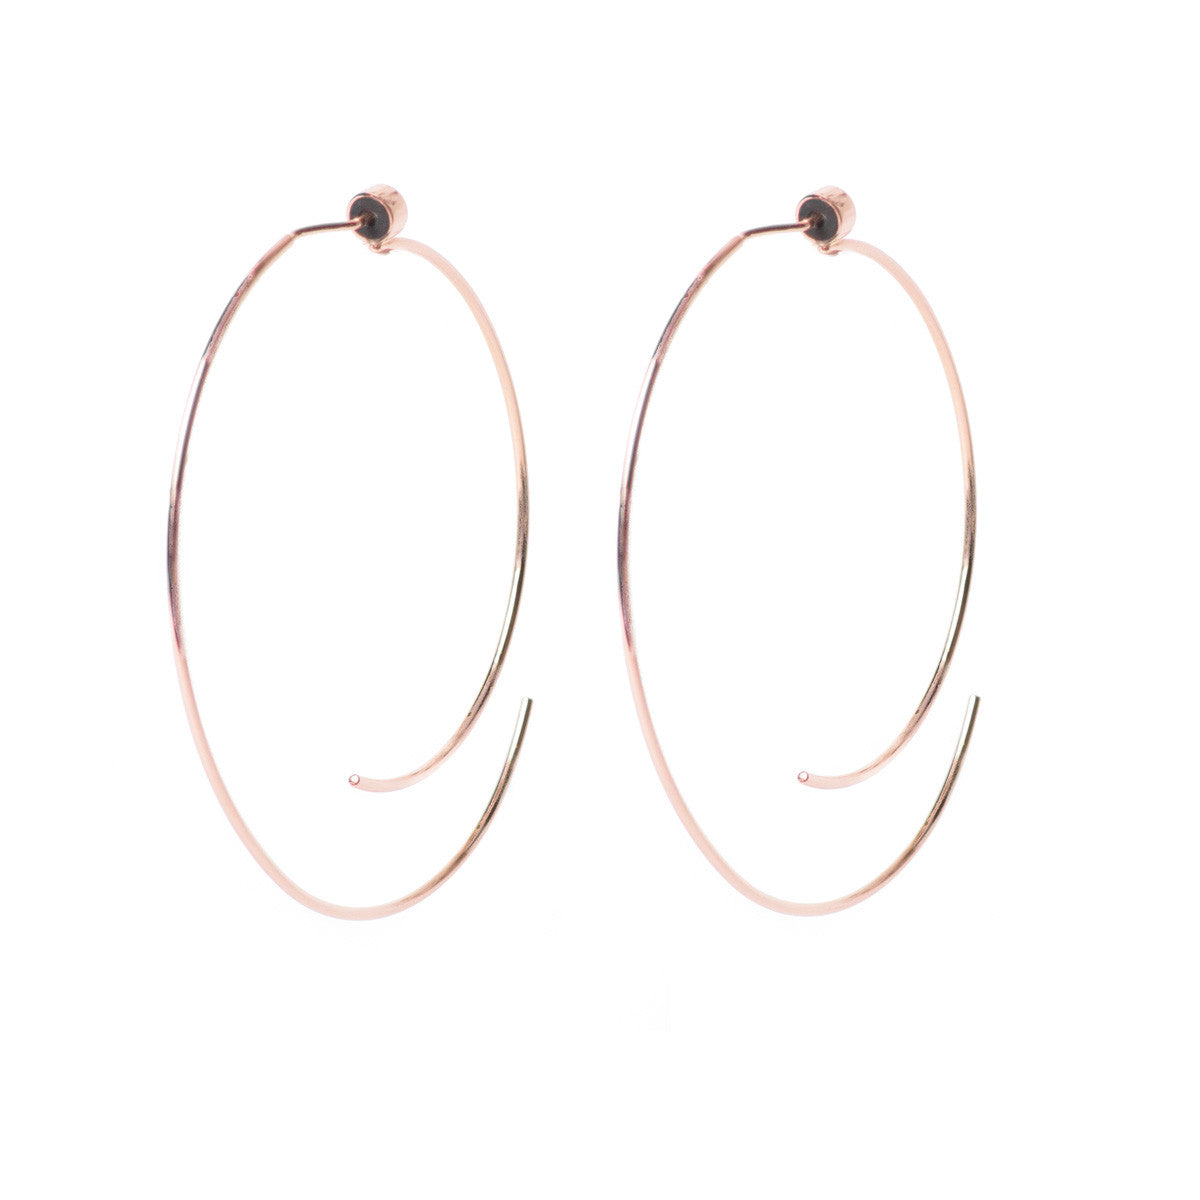 Diane Kordas Jewellery Curved Open Hoops 18kt gold